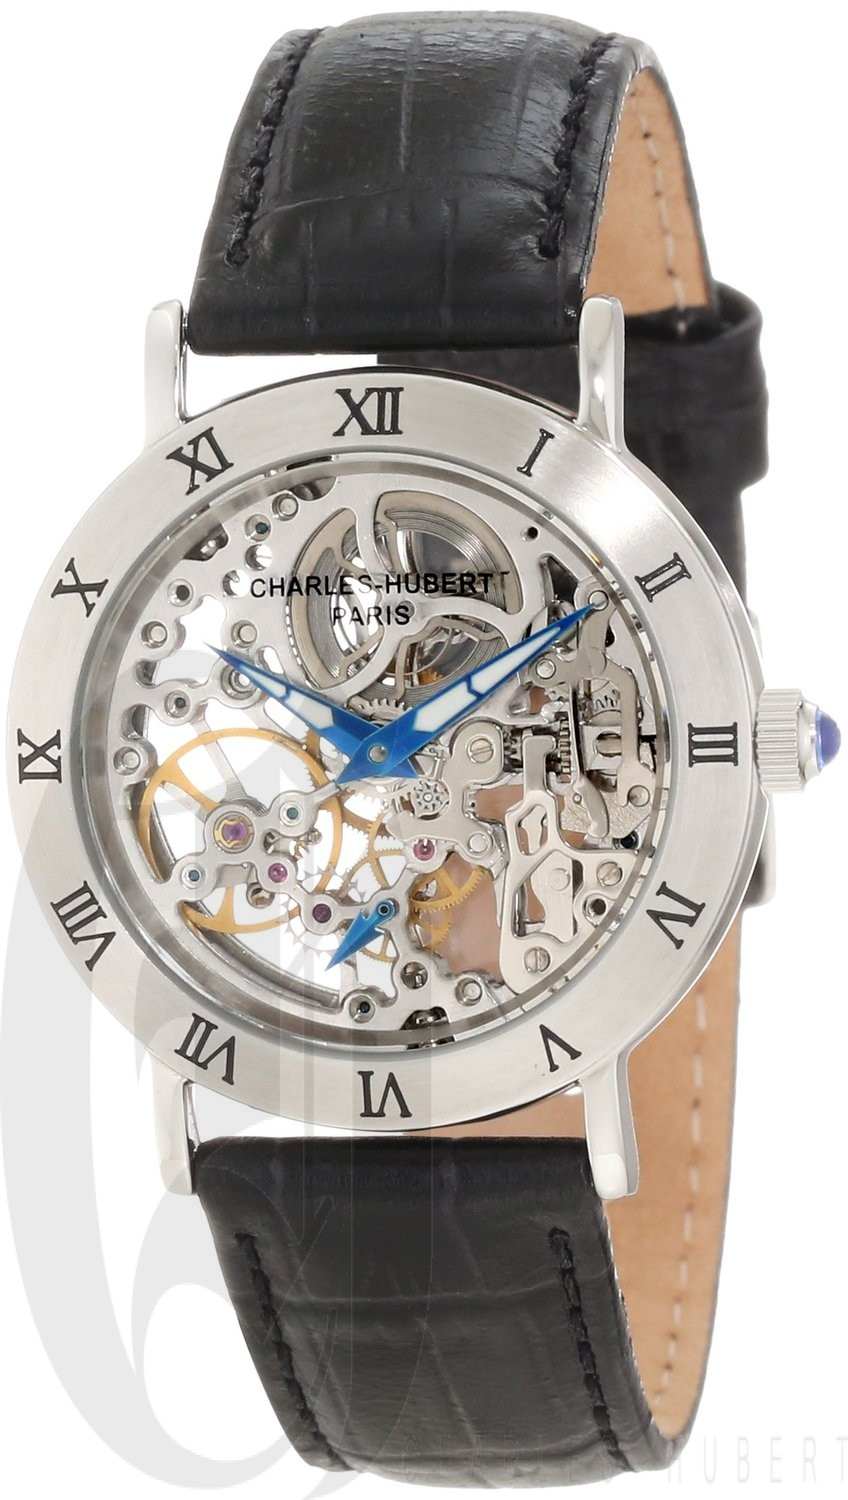 Charles-Hubert Paris Women's Stainless Steel Mechanical Watch